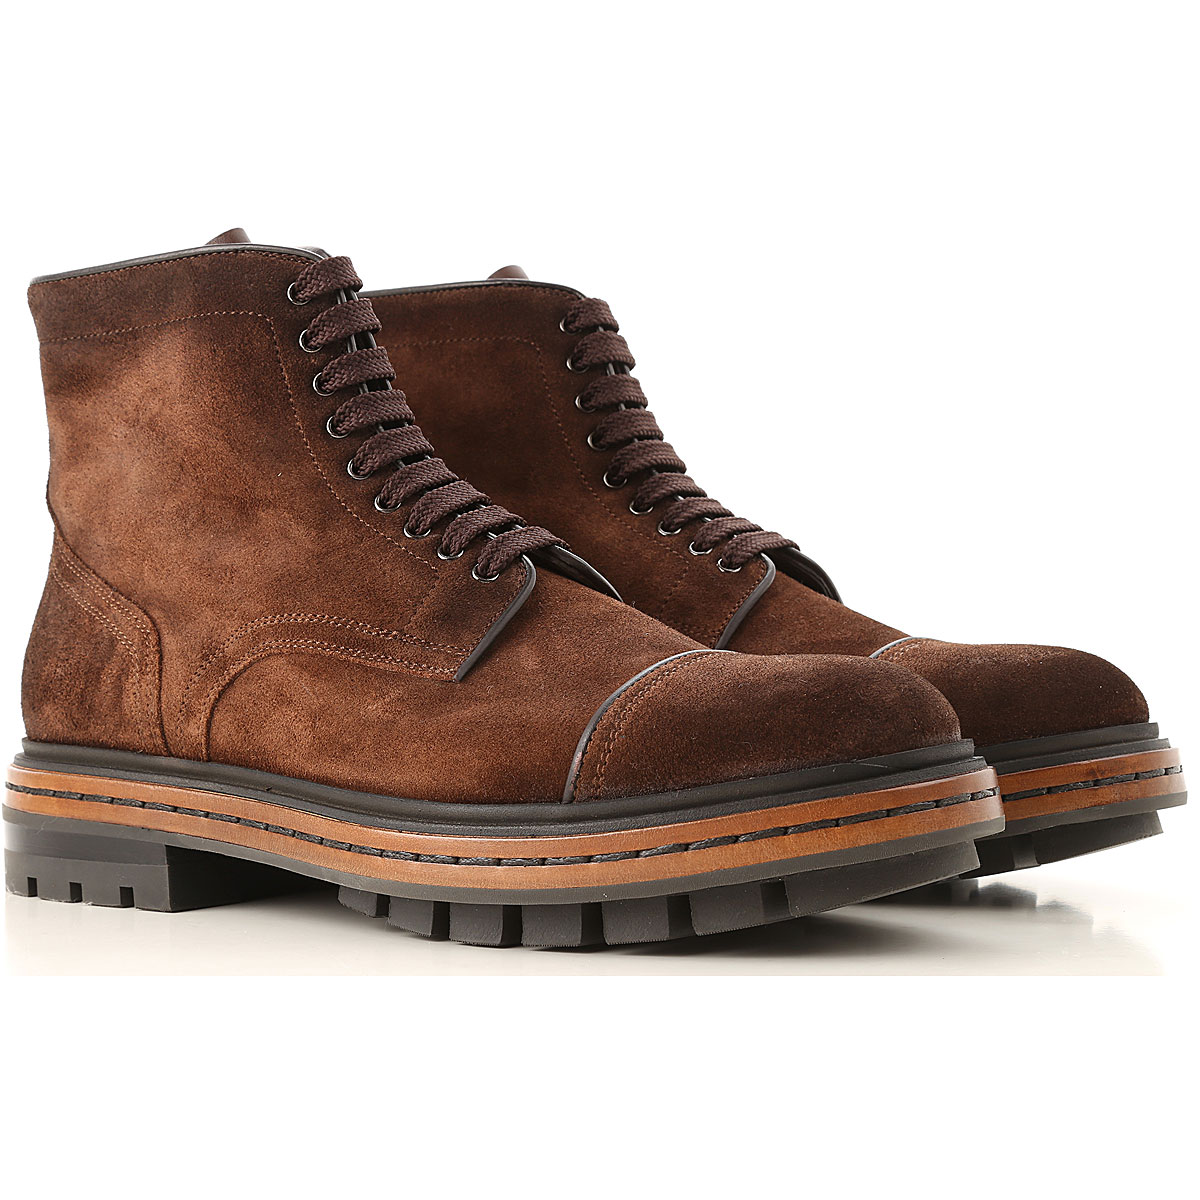 Image of Santoni Boots for Men, Booties, Smoked Brown, suede, 2017, 10 10.5 11 7 7.5 8 8.5 9 9.5